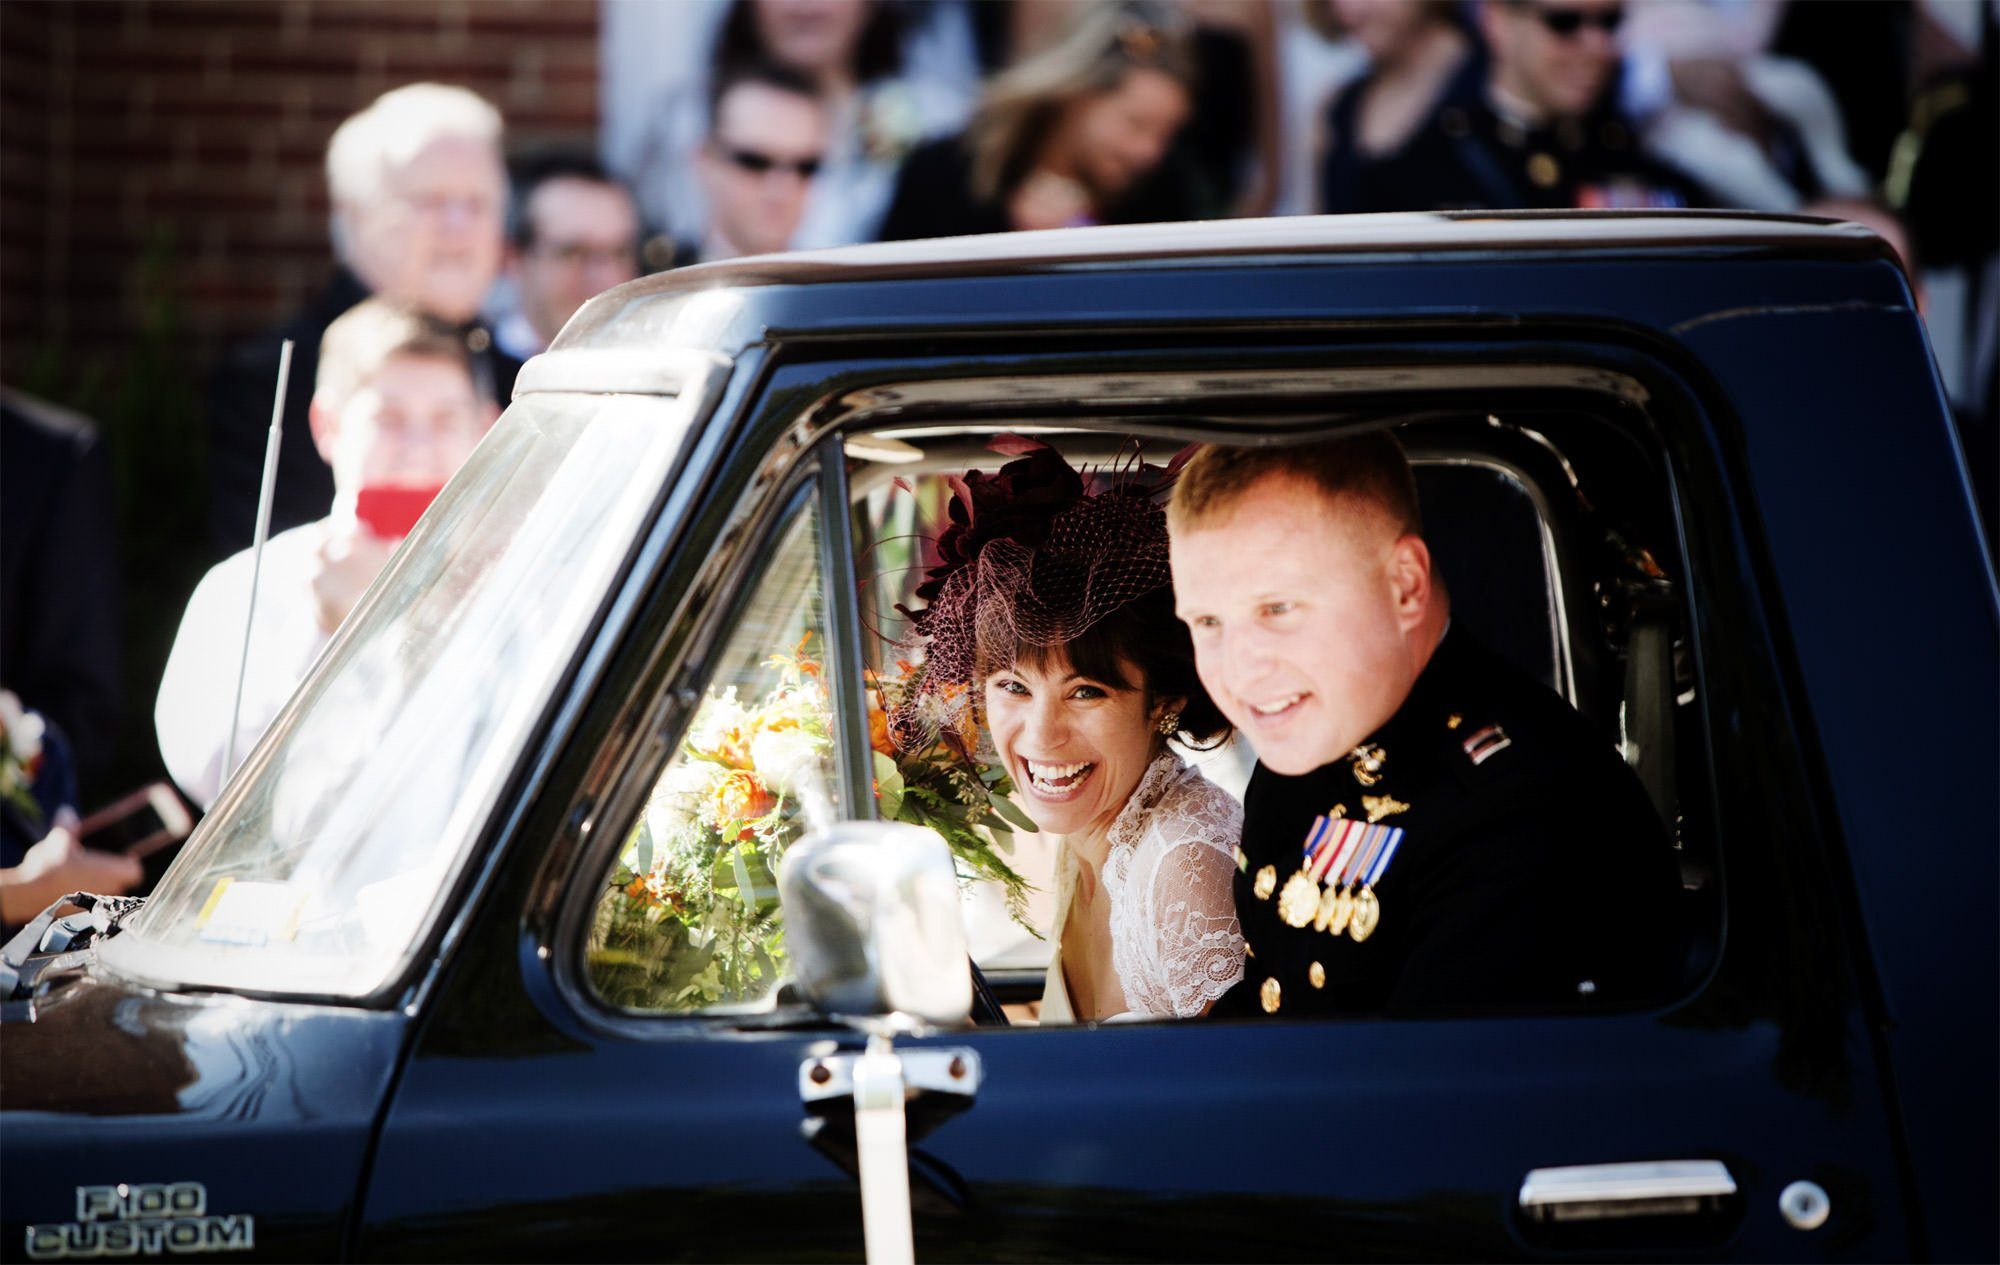 The bride and groom drive to their Governor Calvert House wedding following the ceremony in Annapolis, MD.